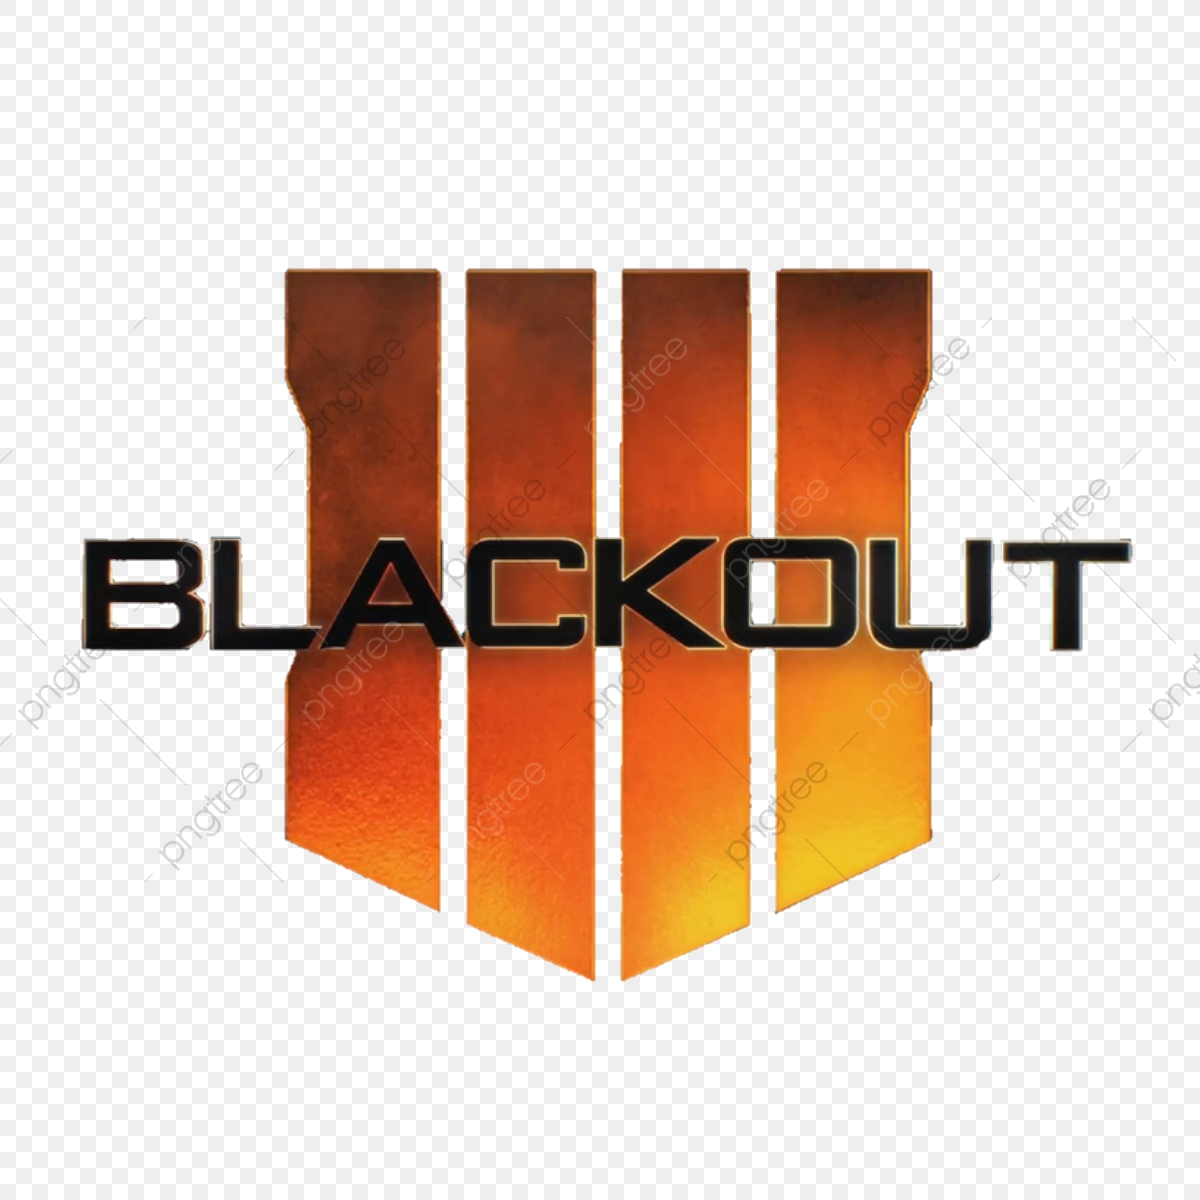 Call Of Duty Black Ops 4 Blackout Logo 944749 Png Images Pngio